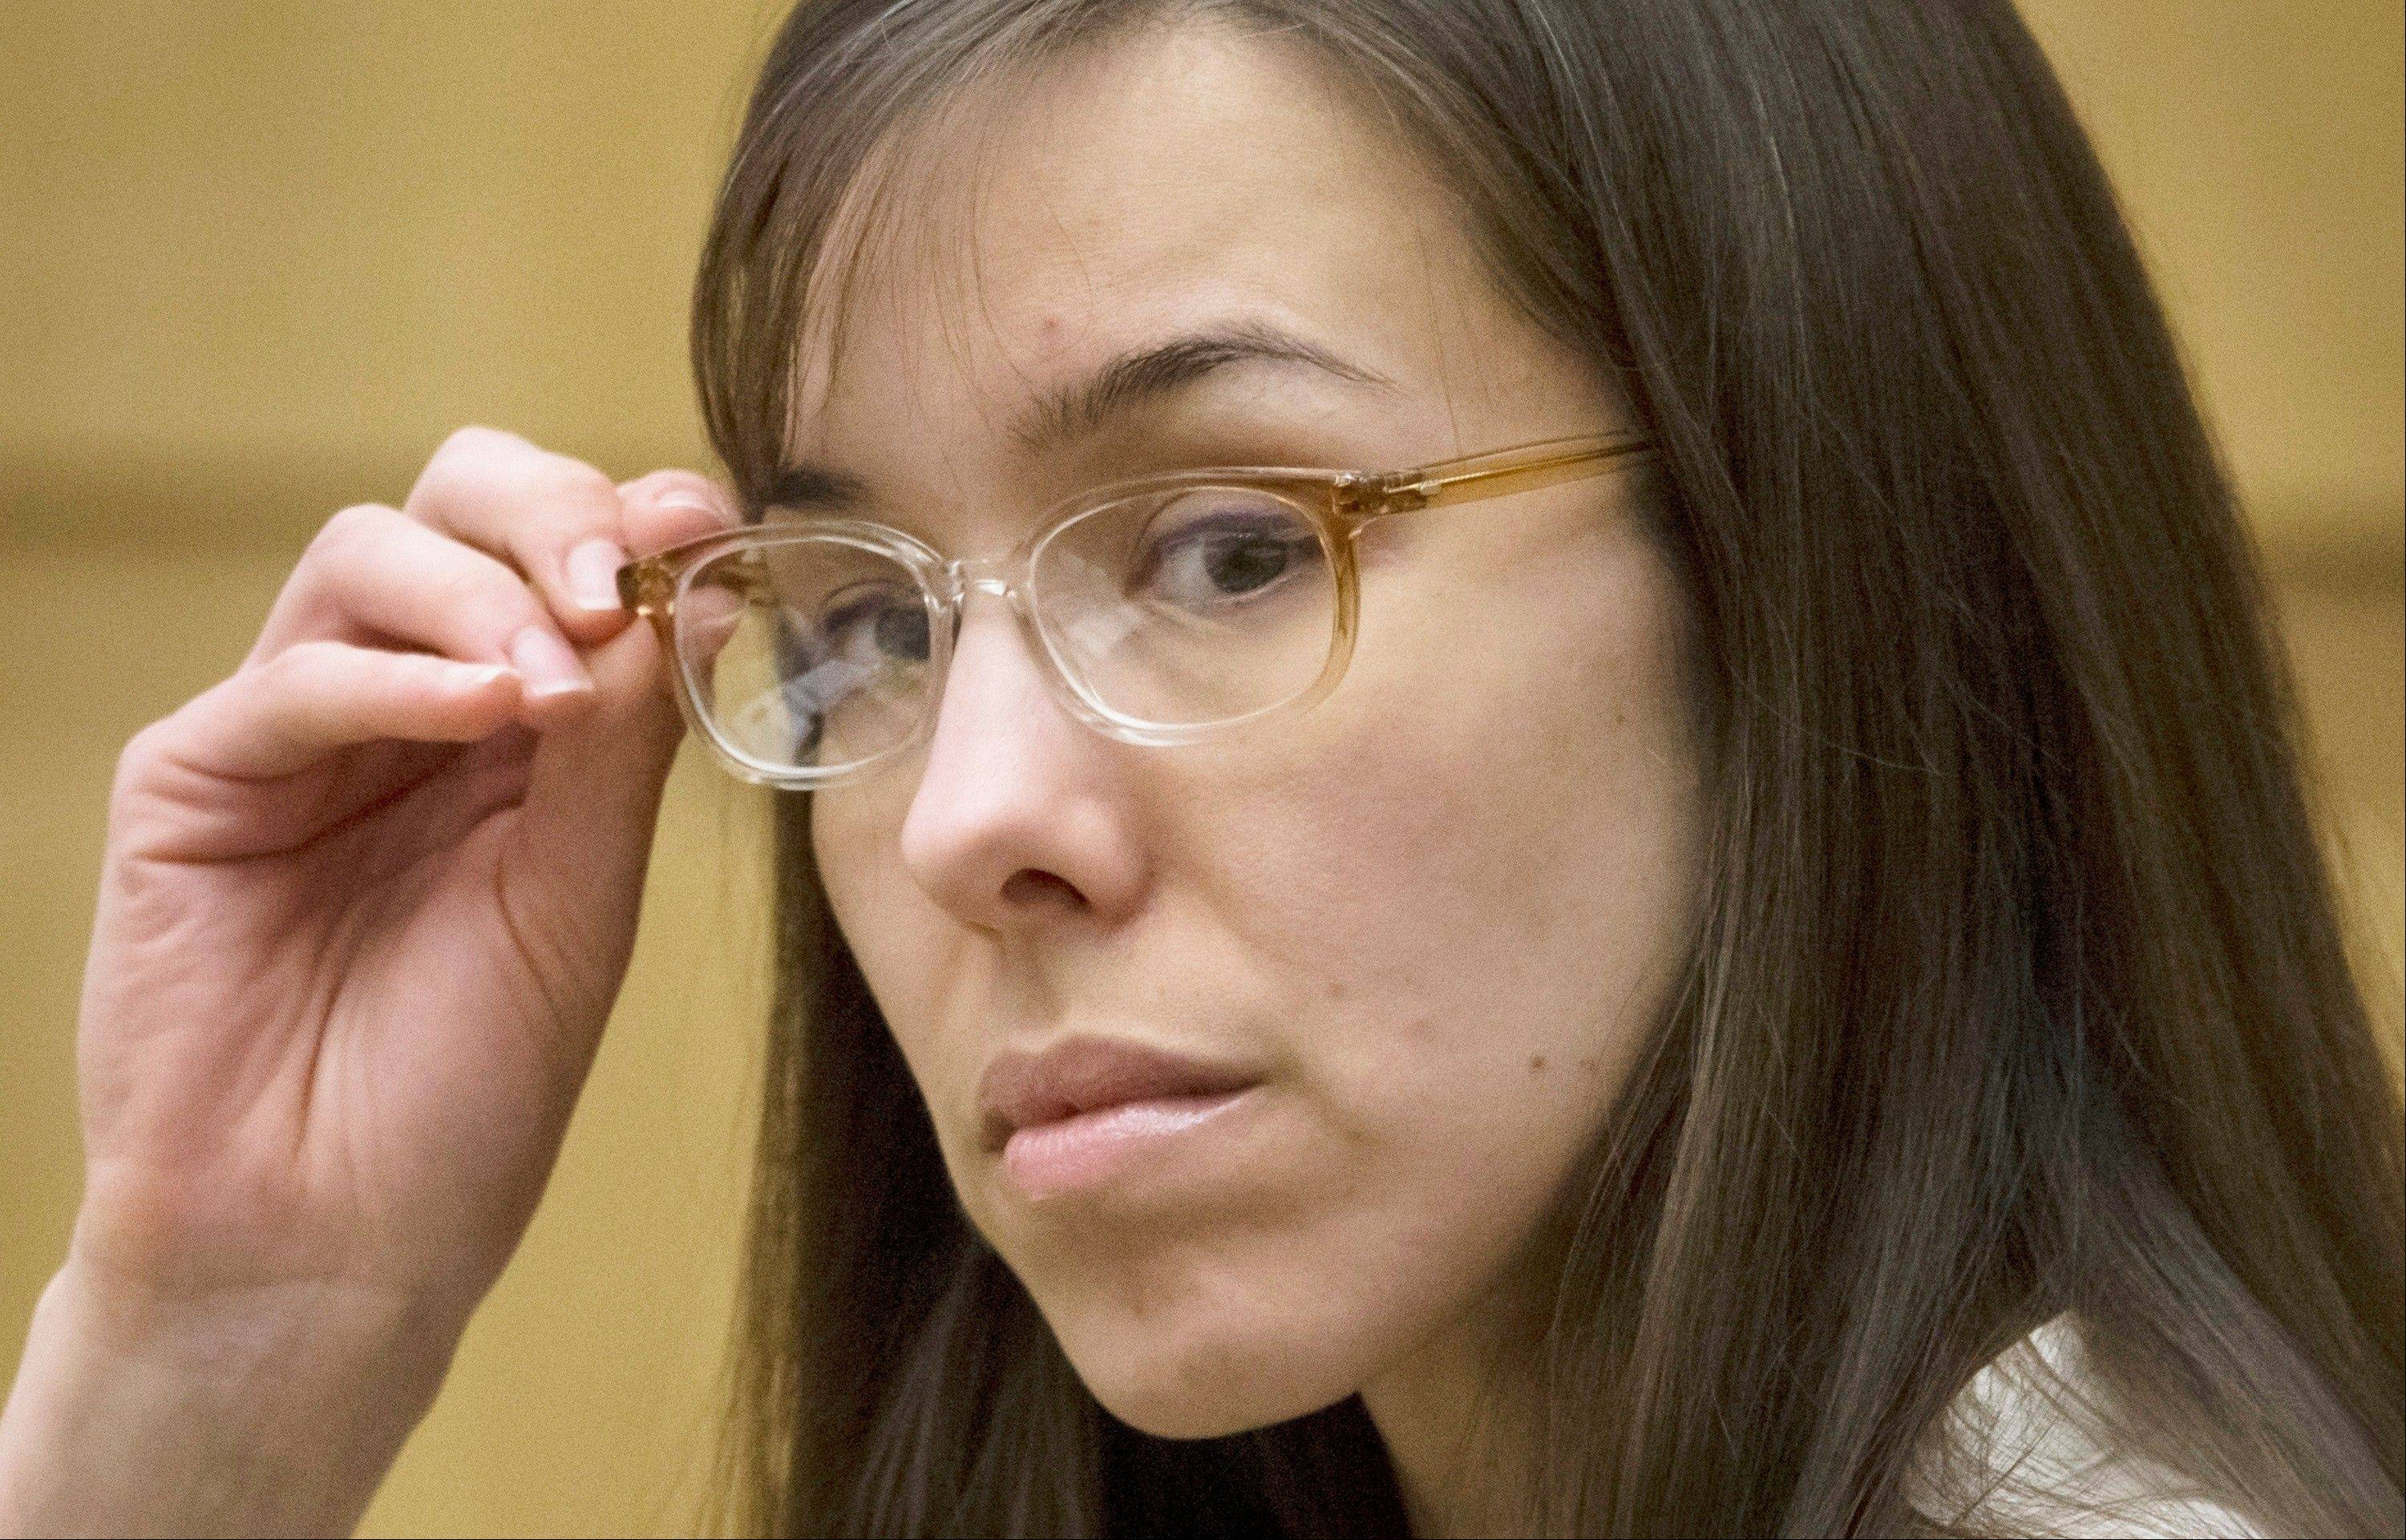 Defendant Jodi Arias is charged with first-degree murder in the stabbing and shooting death of Travis Alexander, 30, in his suburban Phoenix home in June 2008.